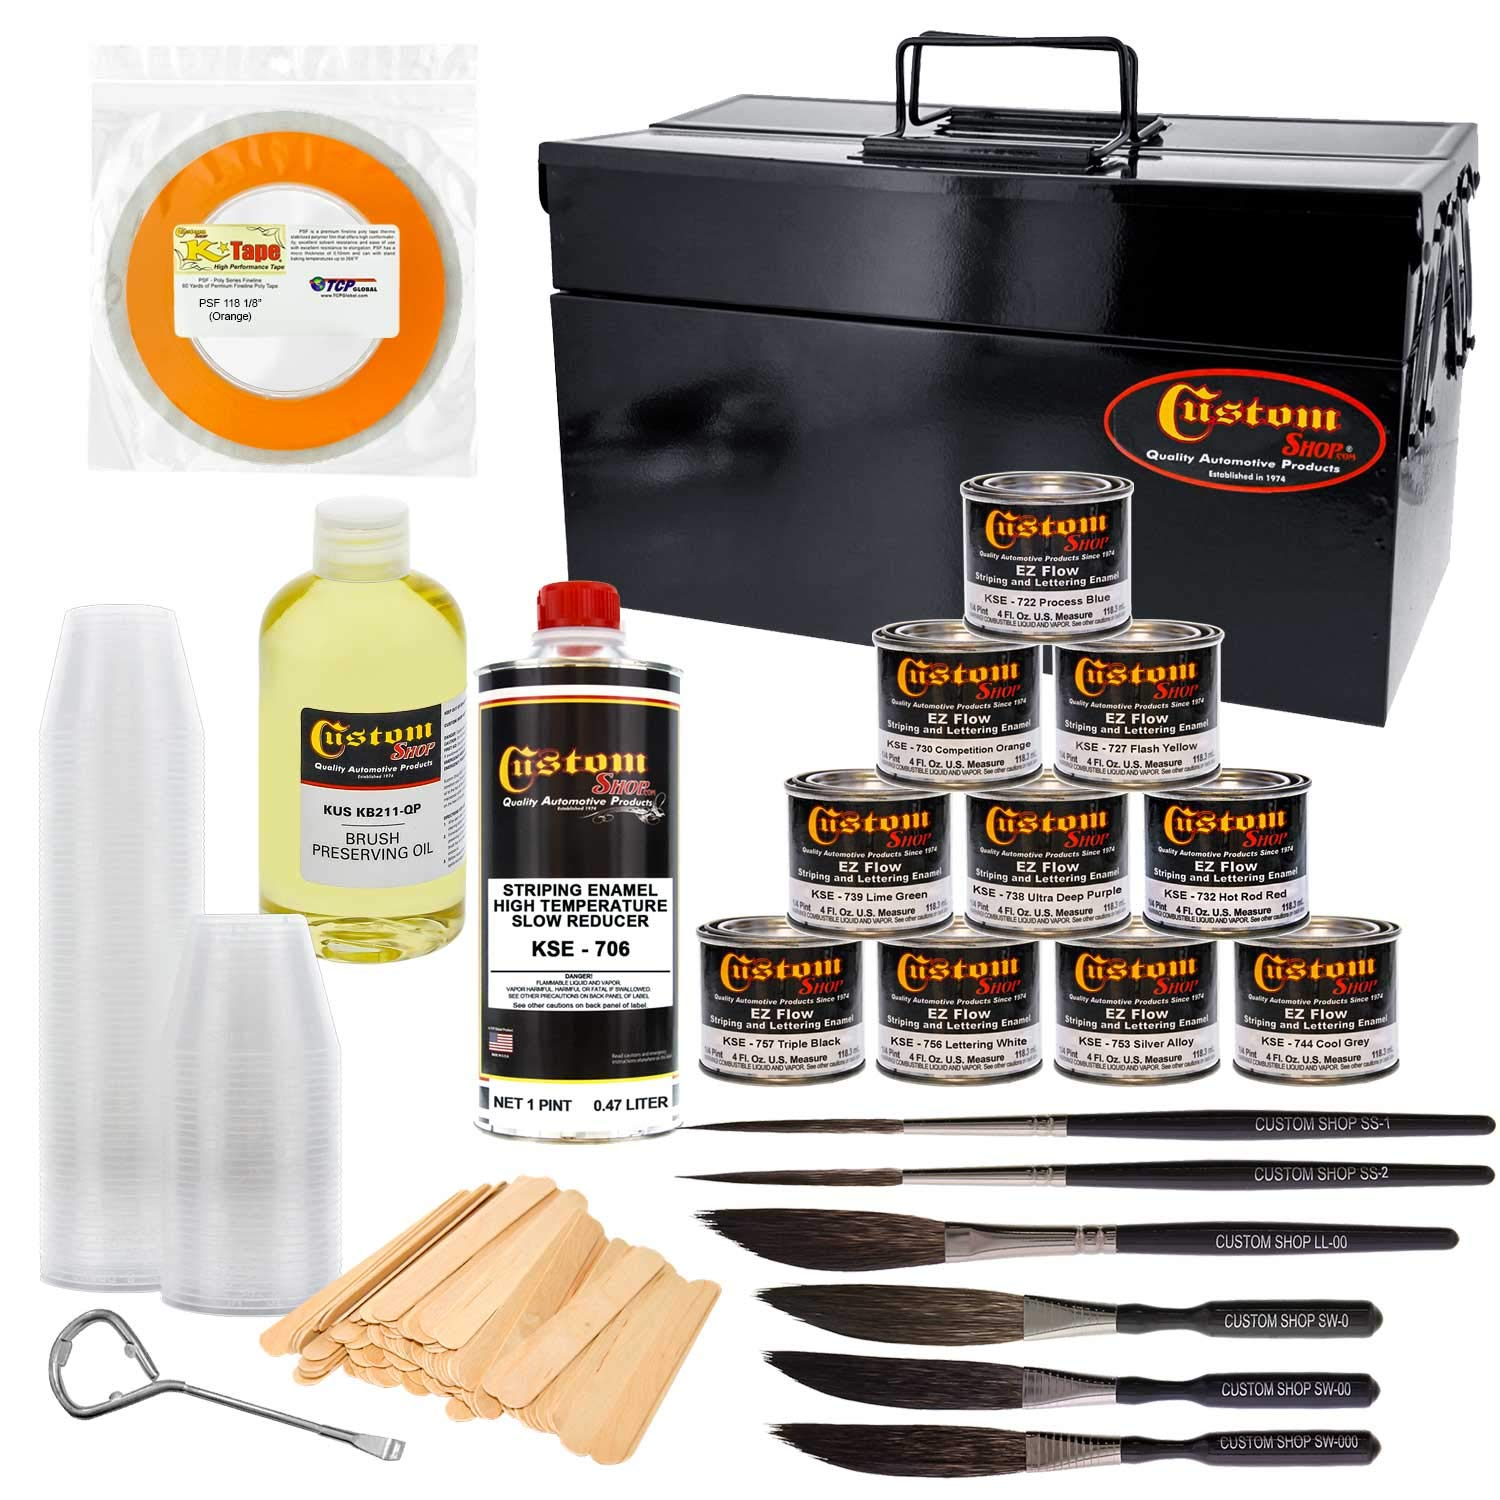 Custom Shop Pinstriping Ultimate Box Kit with Storage Box - 10-4 Ounce Enamel Paint Colors, Tape, Color Chart, Reducer, Brushes and Mixing Cups